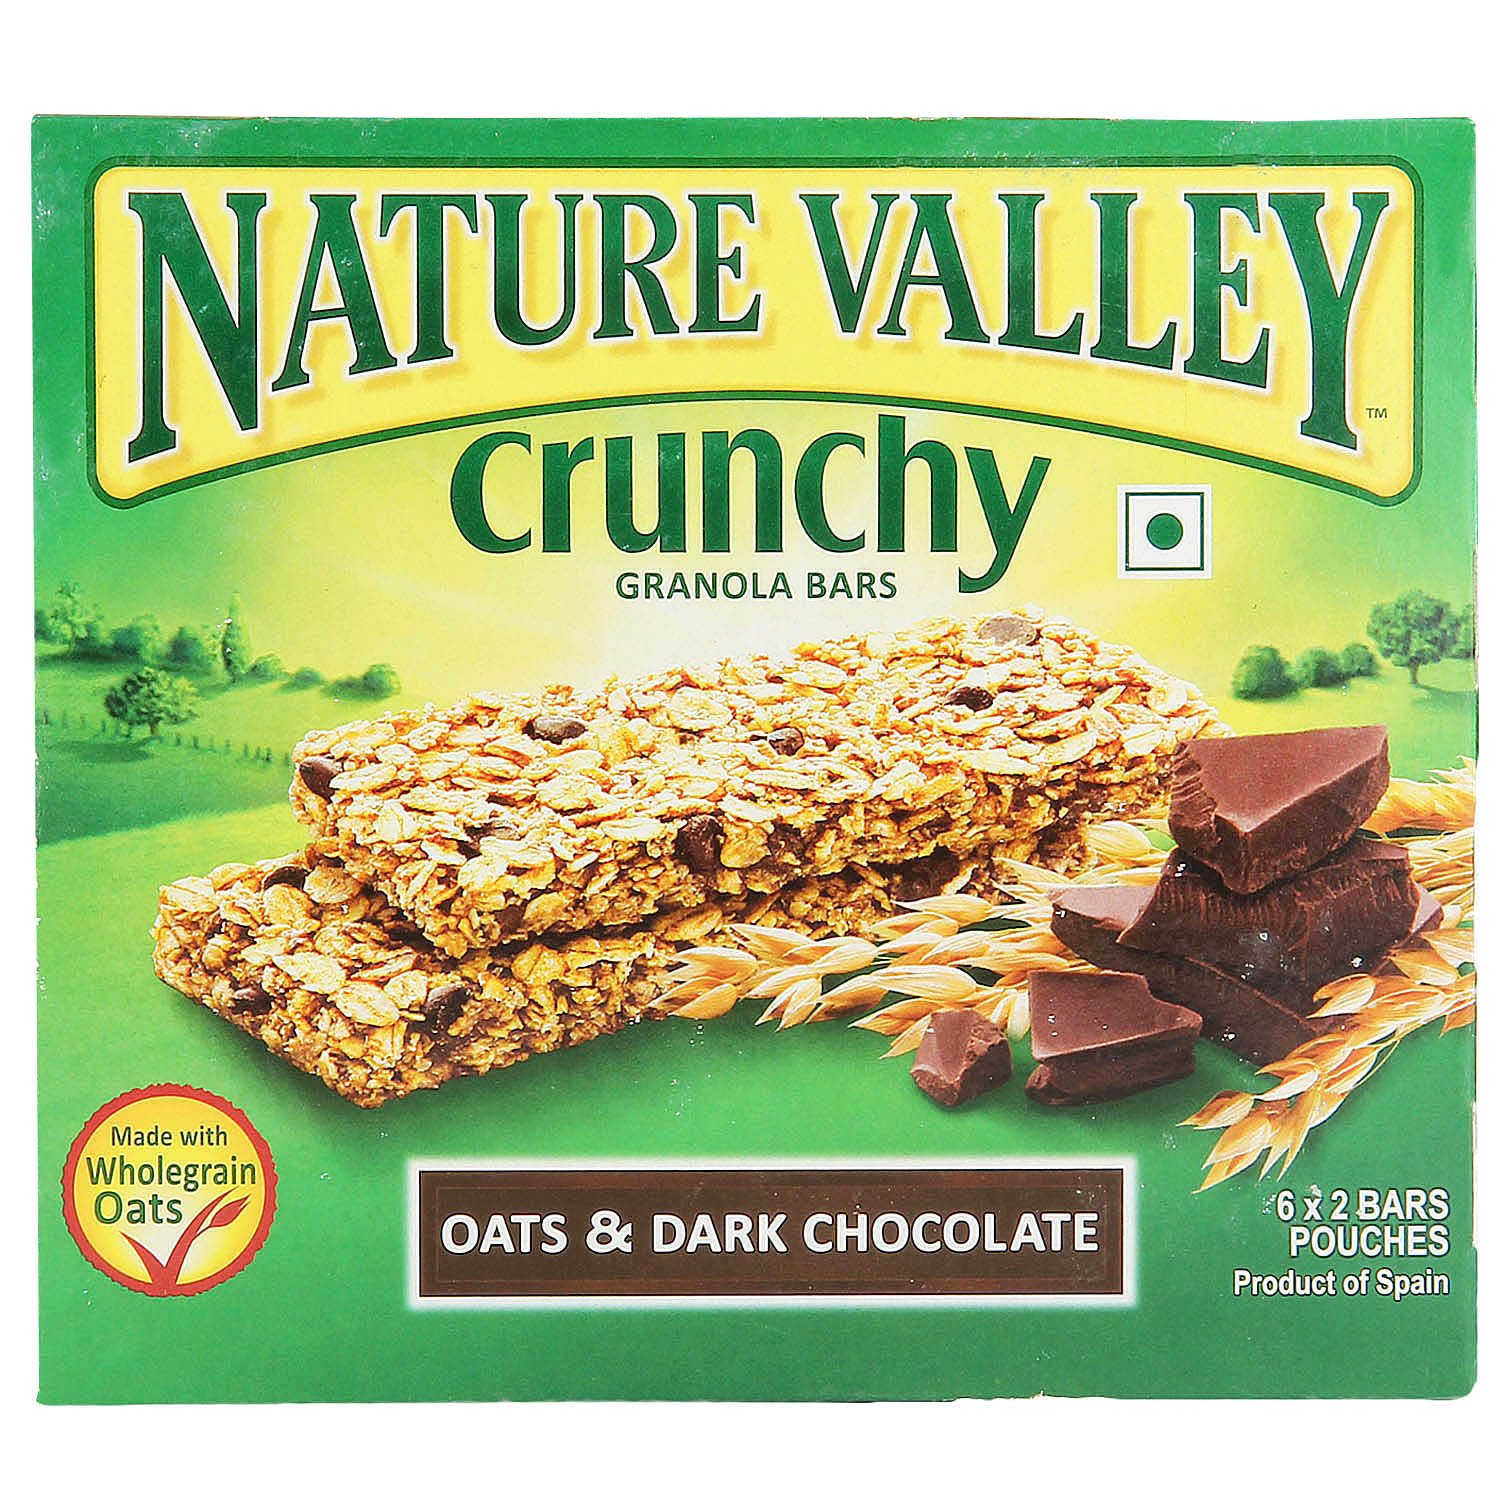 Dark Chocolate Crunch Food Label